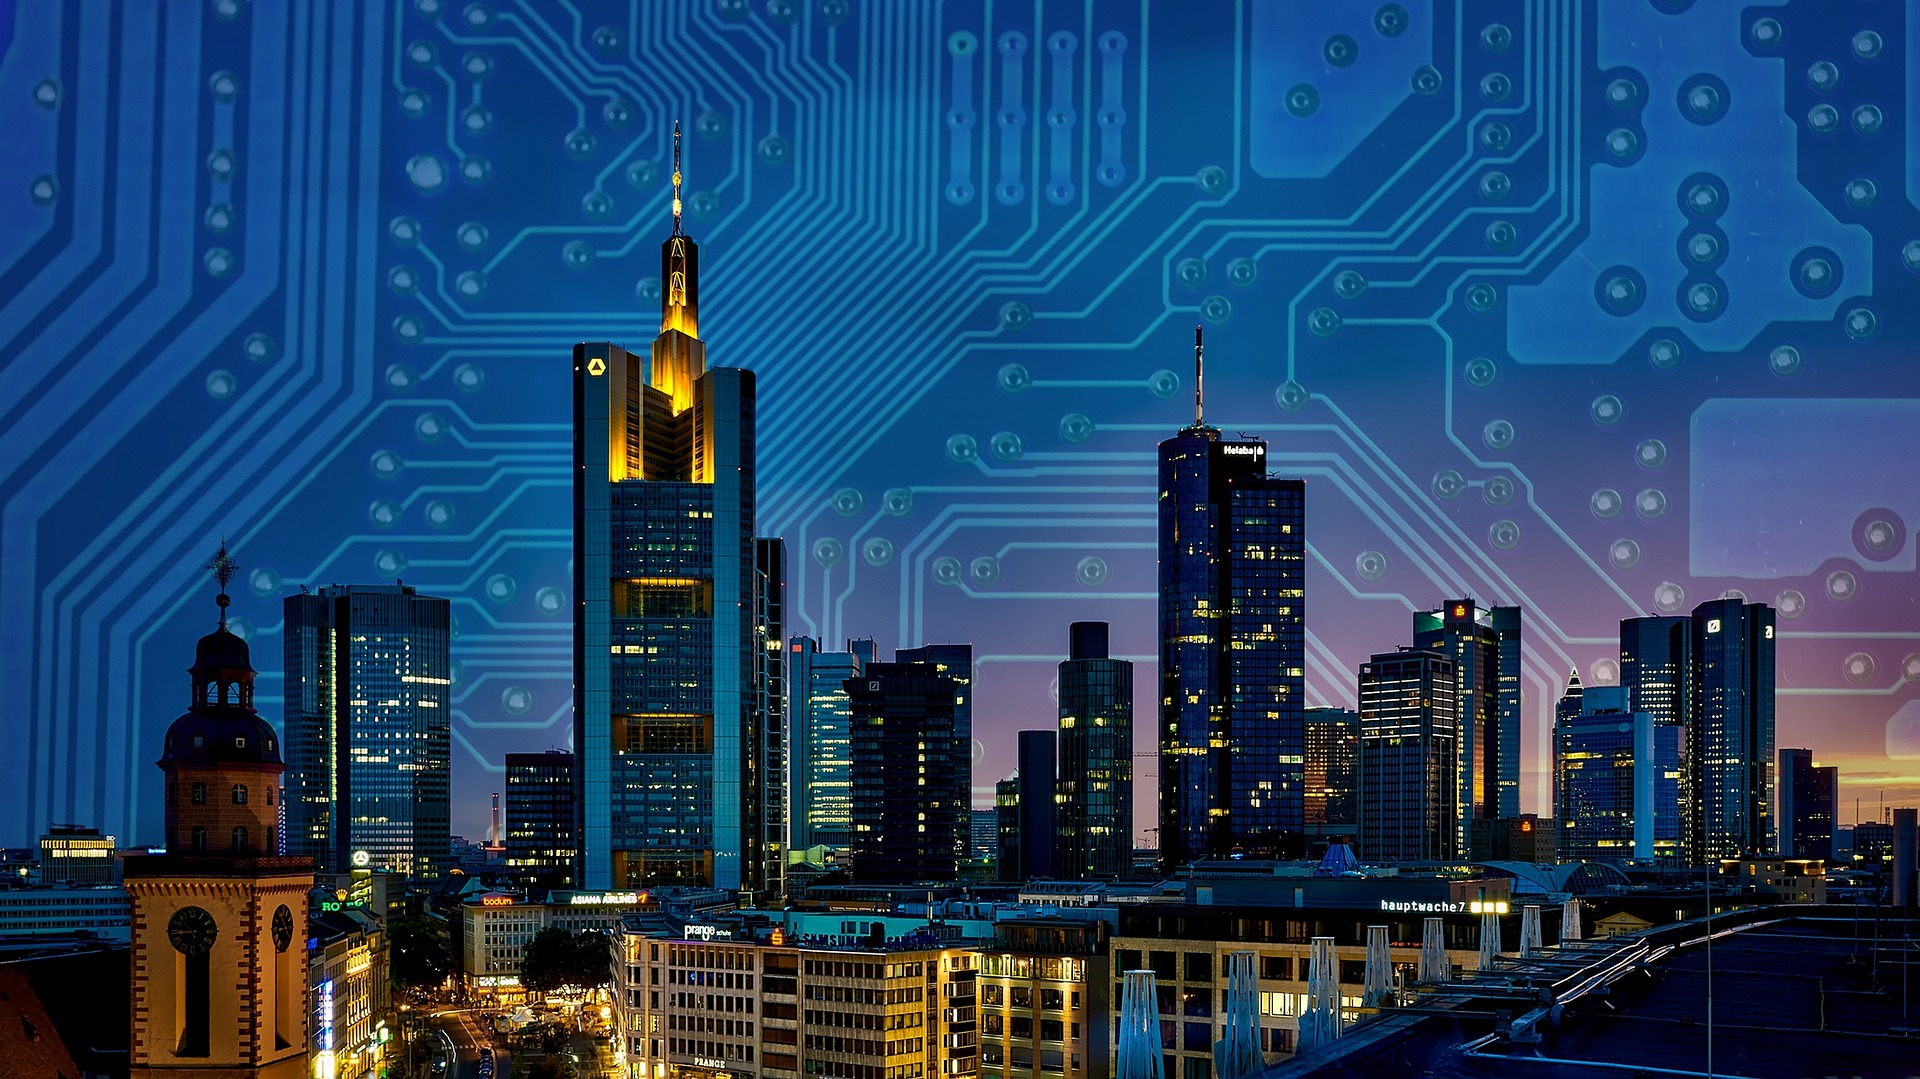 City displayed over a circuitboard.